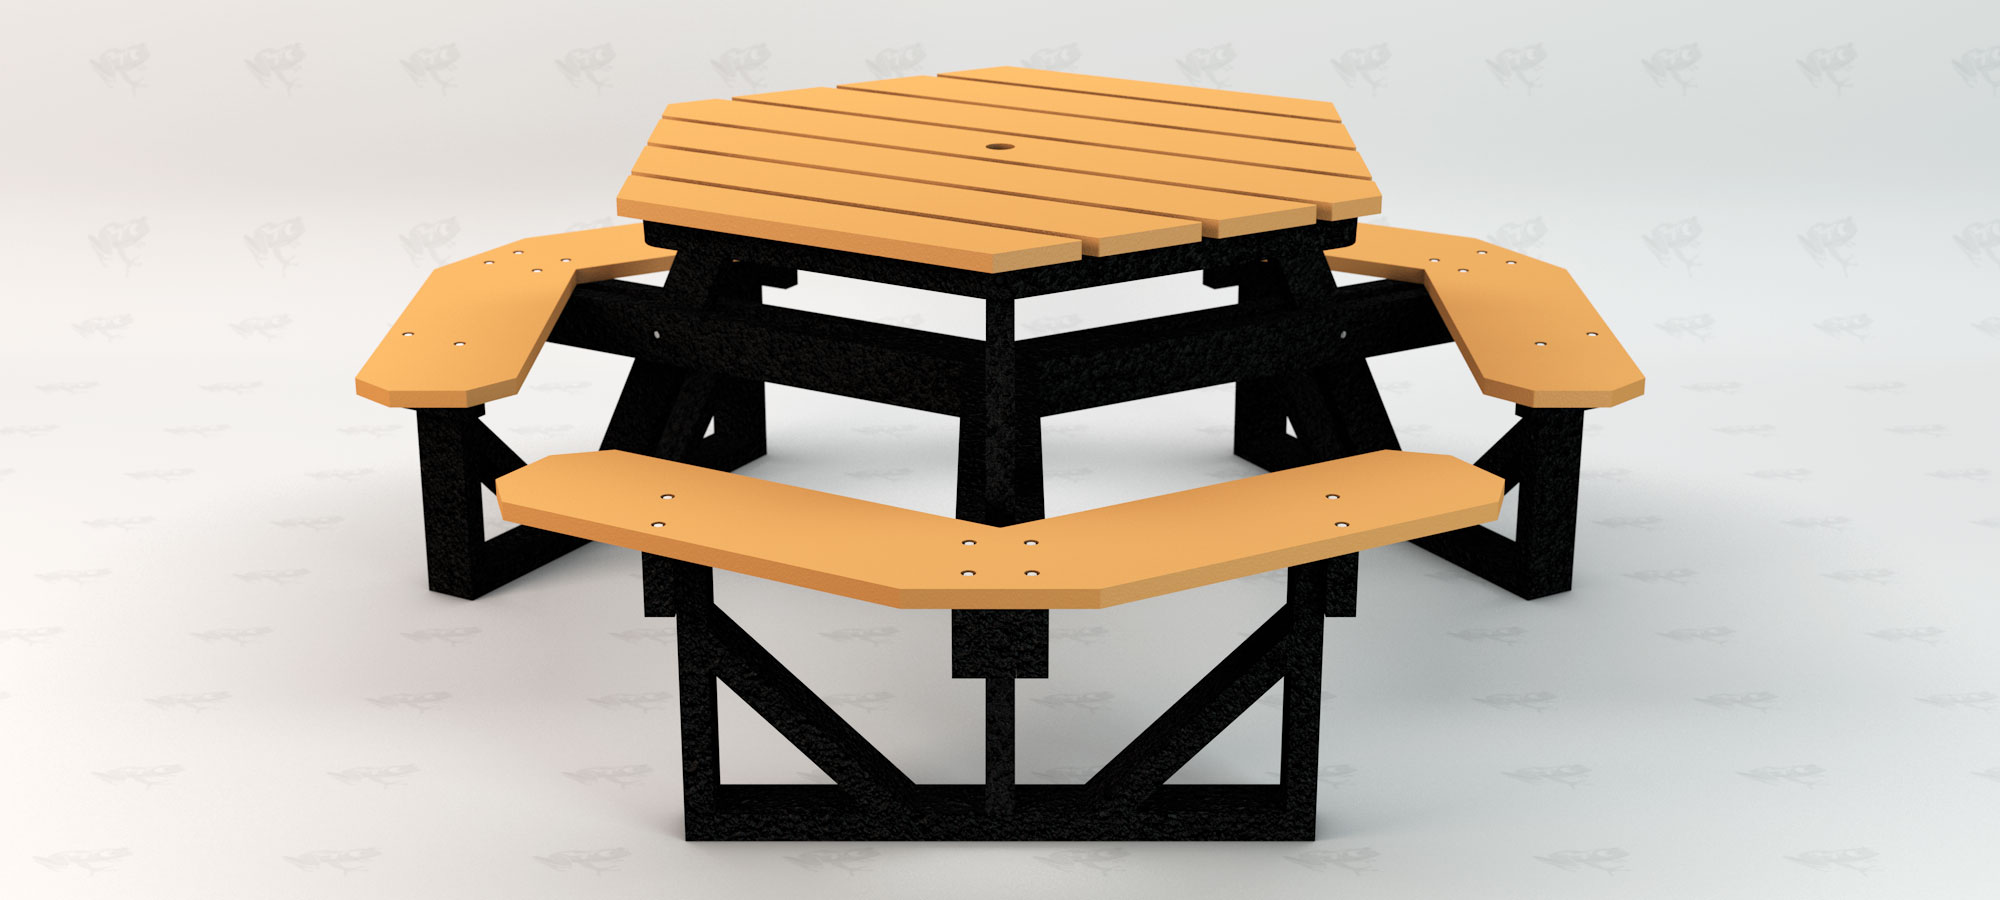 Hex Table Front